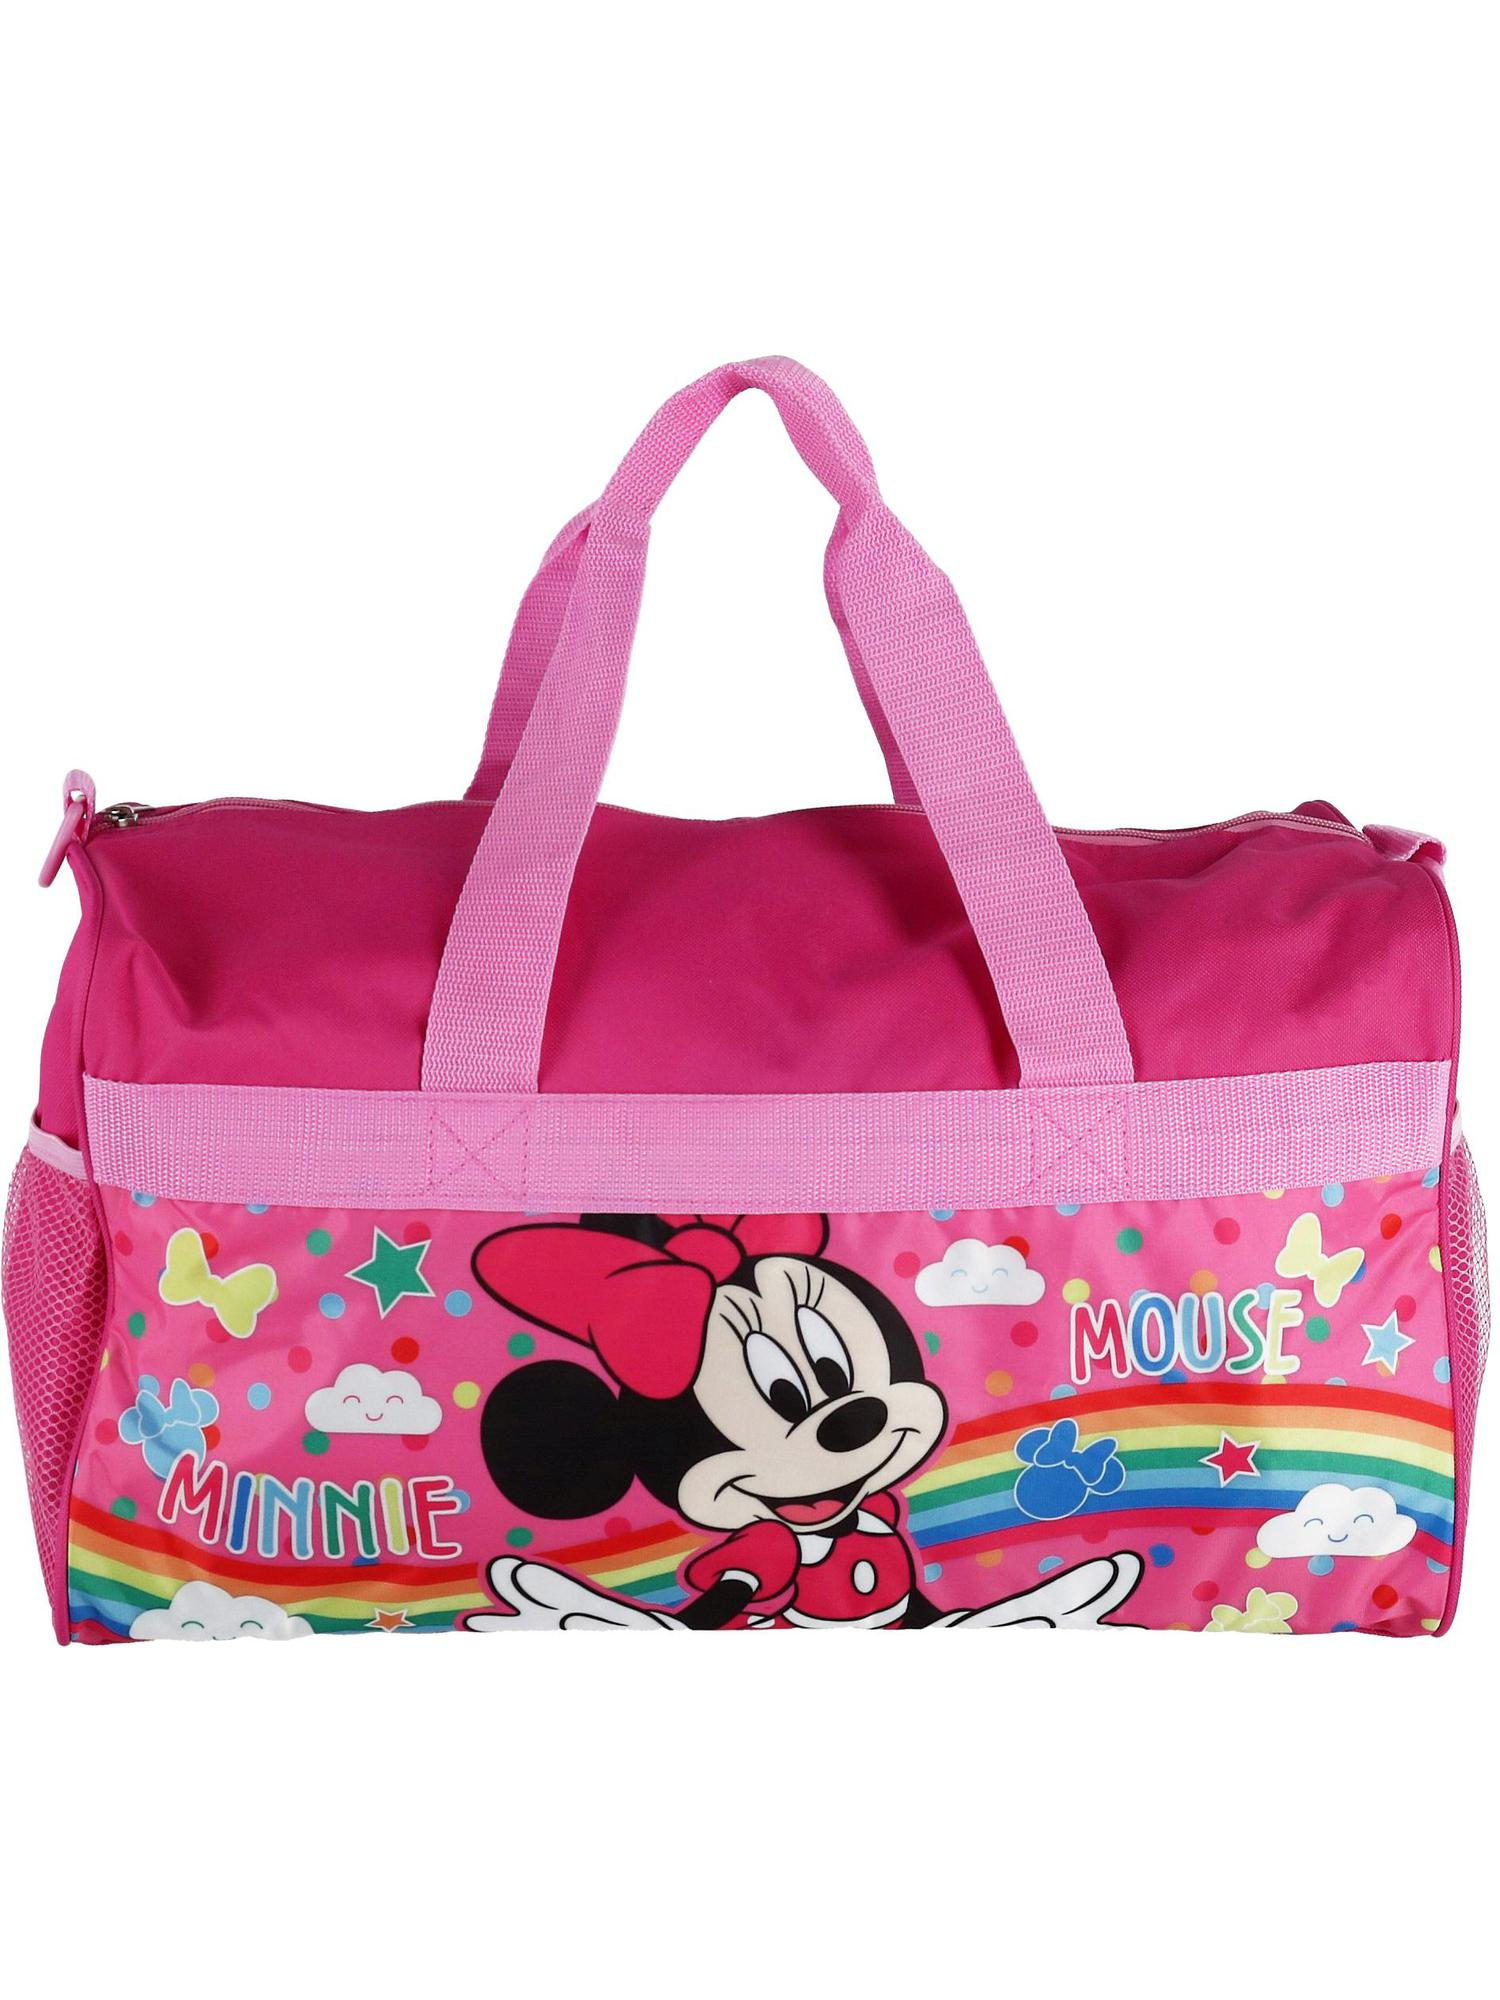 Disney Minnie Mouse Pink Tote Purse Bag Kids Girls Handbag NEW